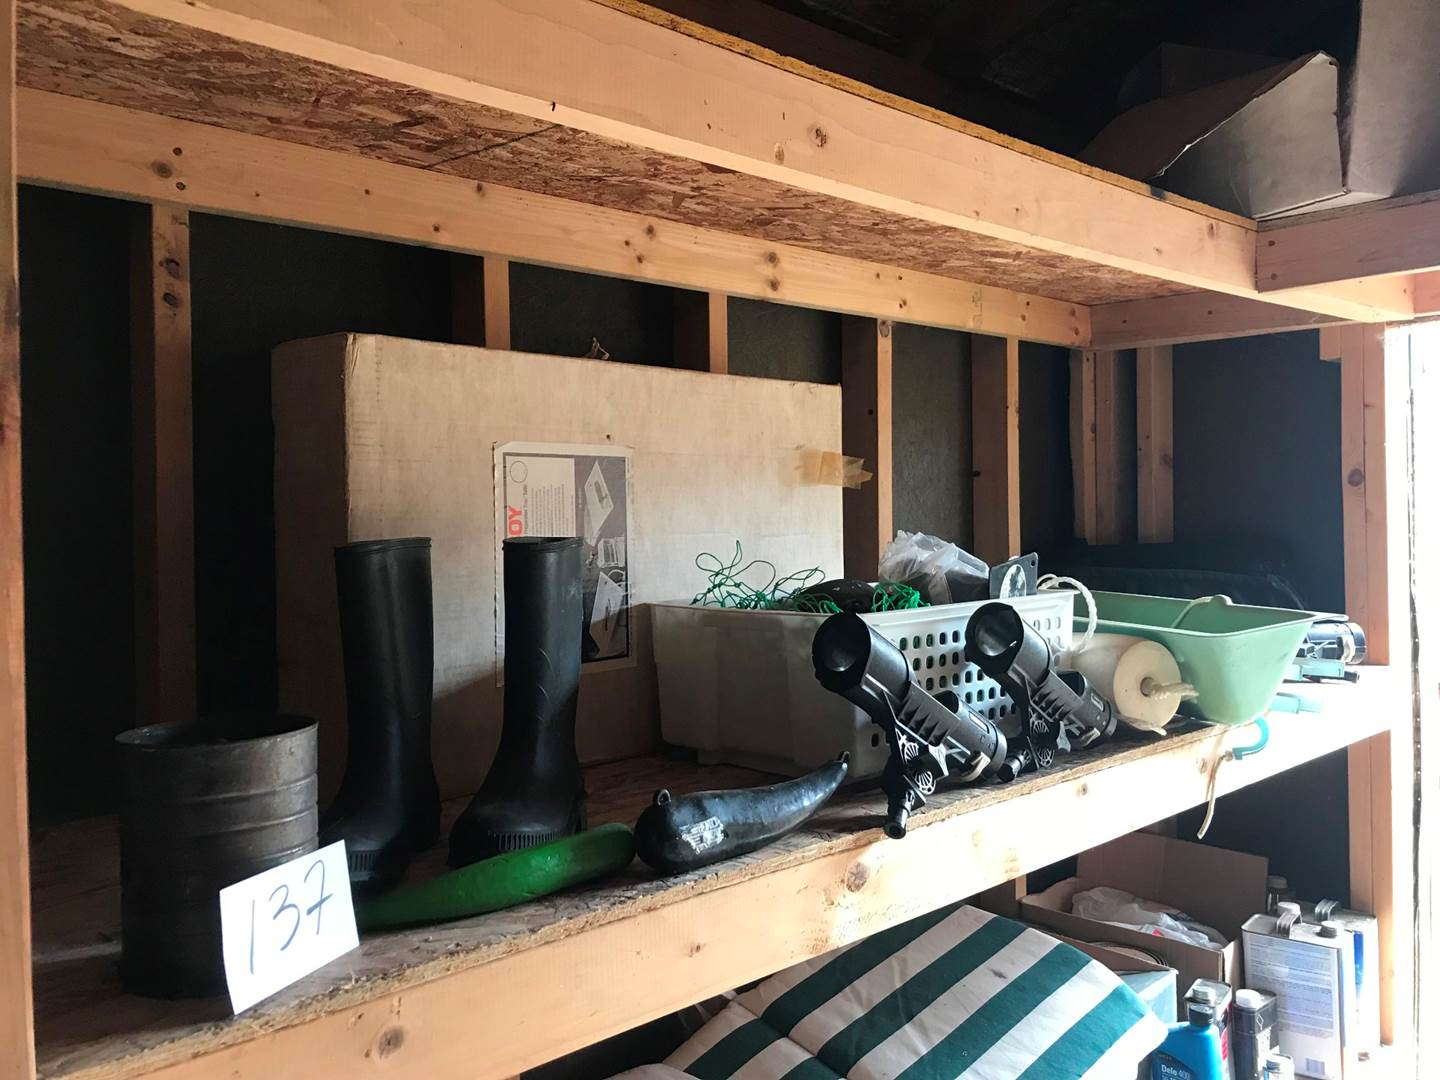 Lot # 137 - Fishing Lot: Fishing Net, Weights, Boots Size 8, Bait Boy Fish Cleaning Tables, 4 Pole Holders & More. (main image)